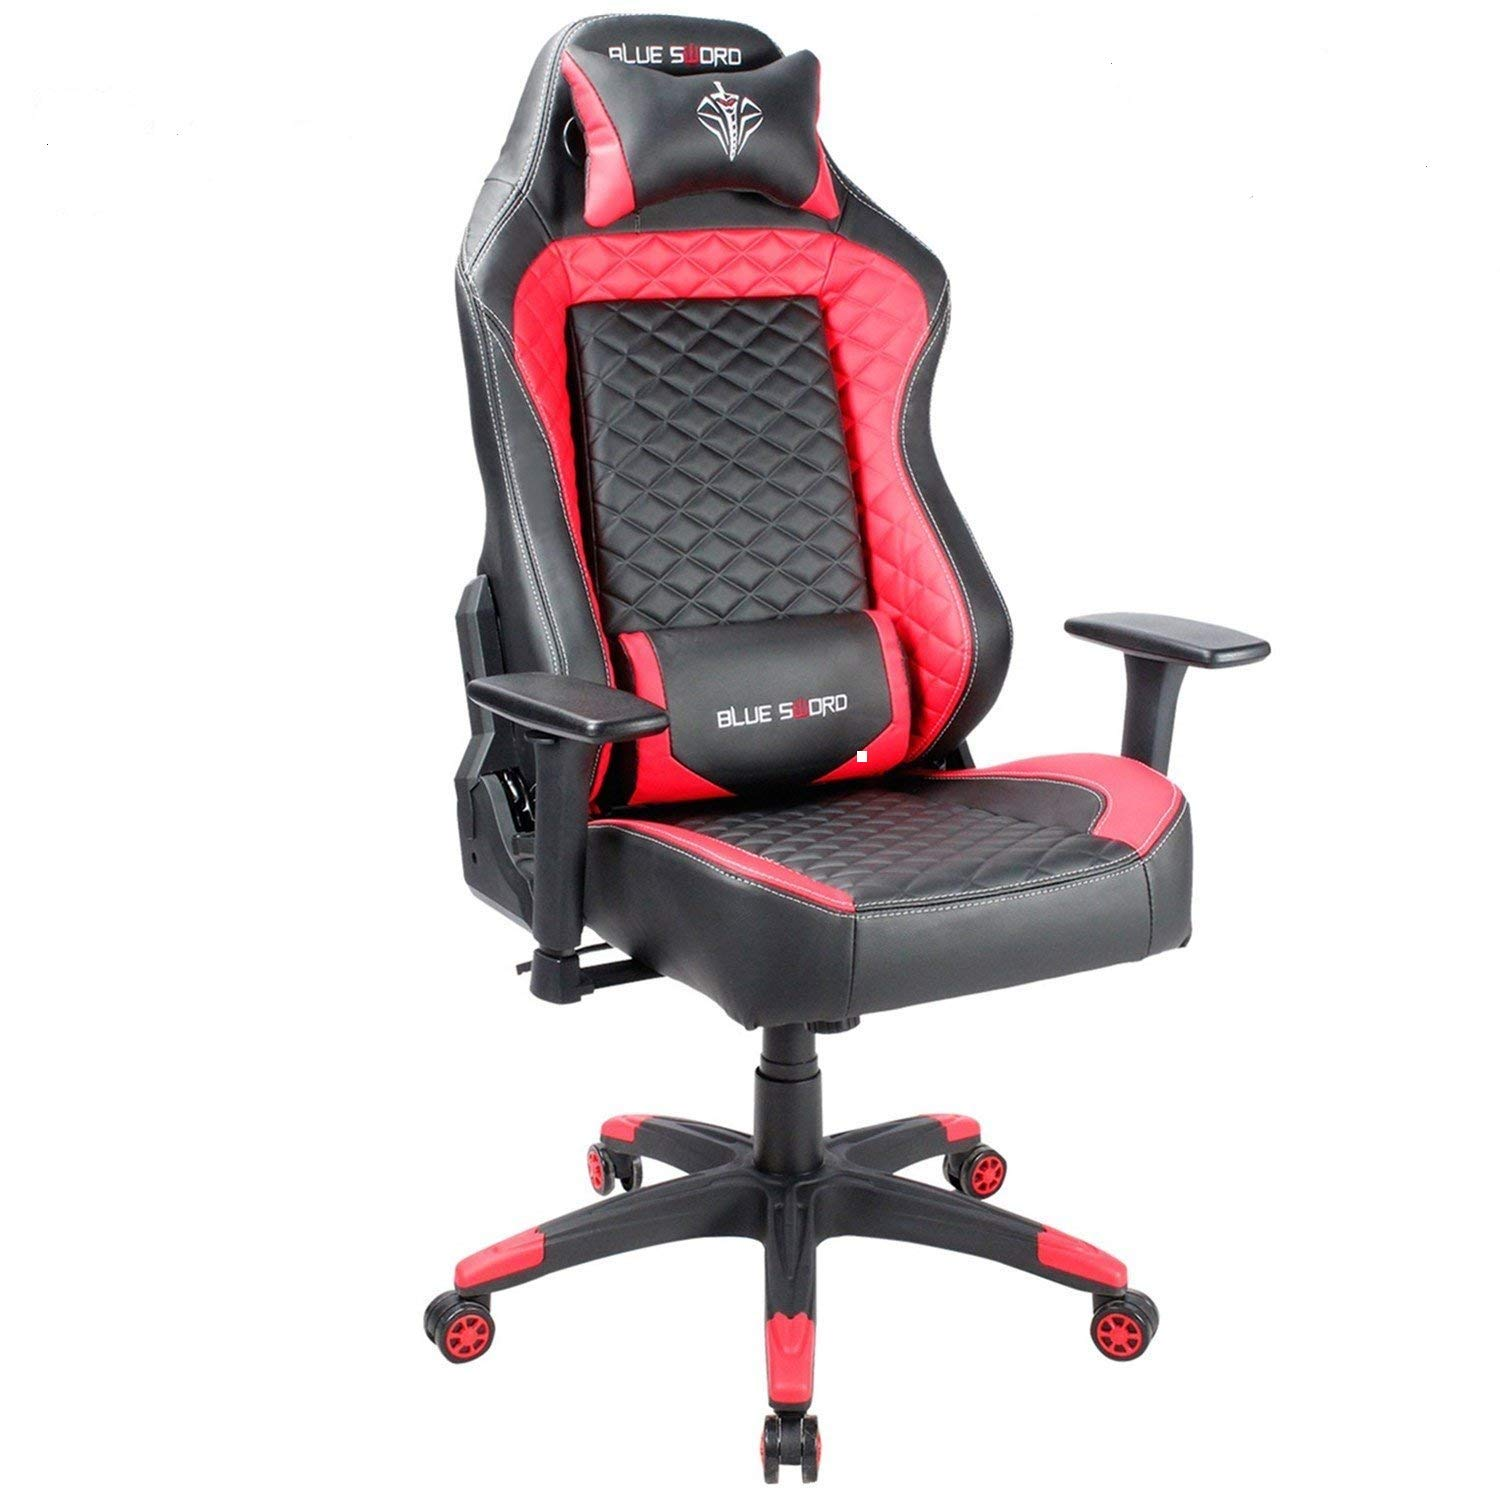 Blue Sword Large Size Racing Gaming Chair High Back Ergonomic Swivel Computer Office Desk Chair with Headrest and Lumbar Support, Blue LCH-JD-8993-BU